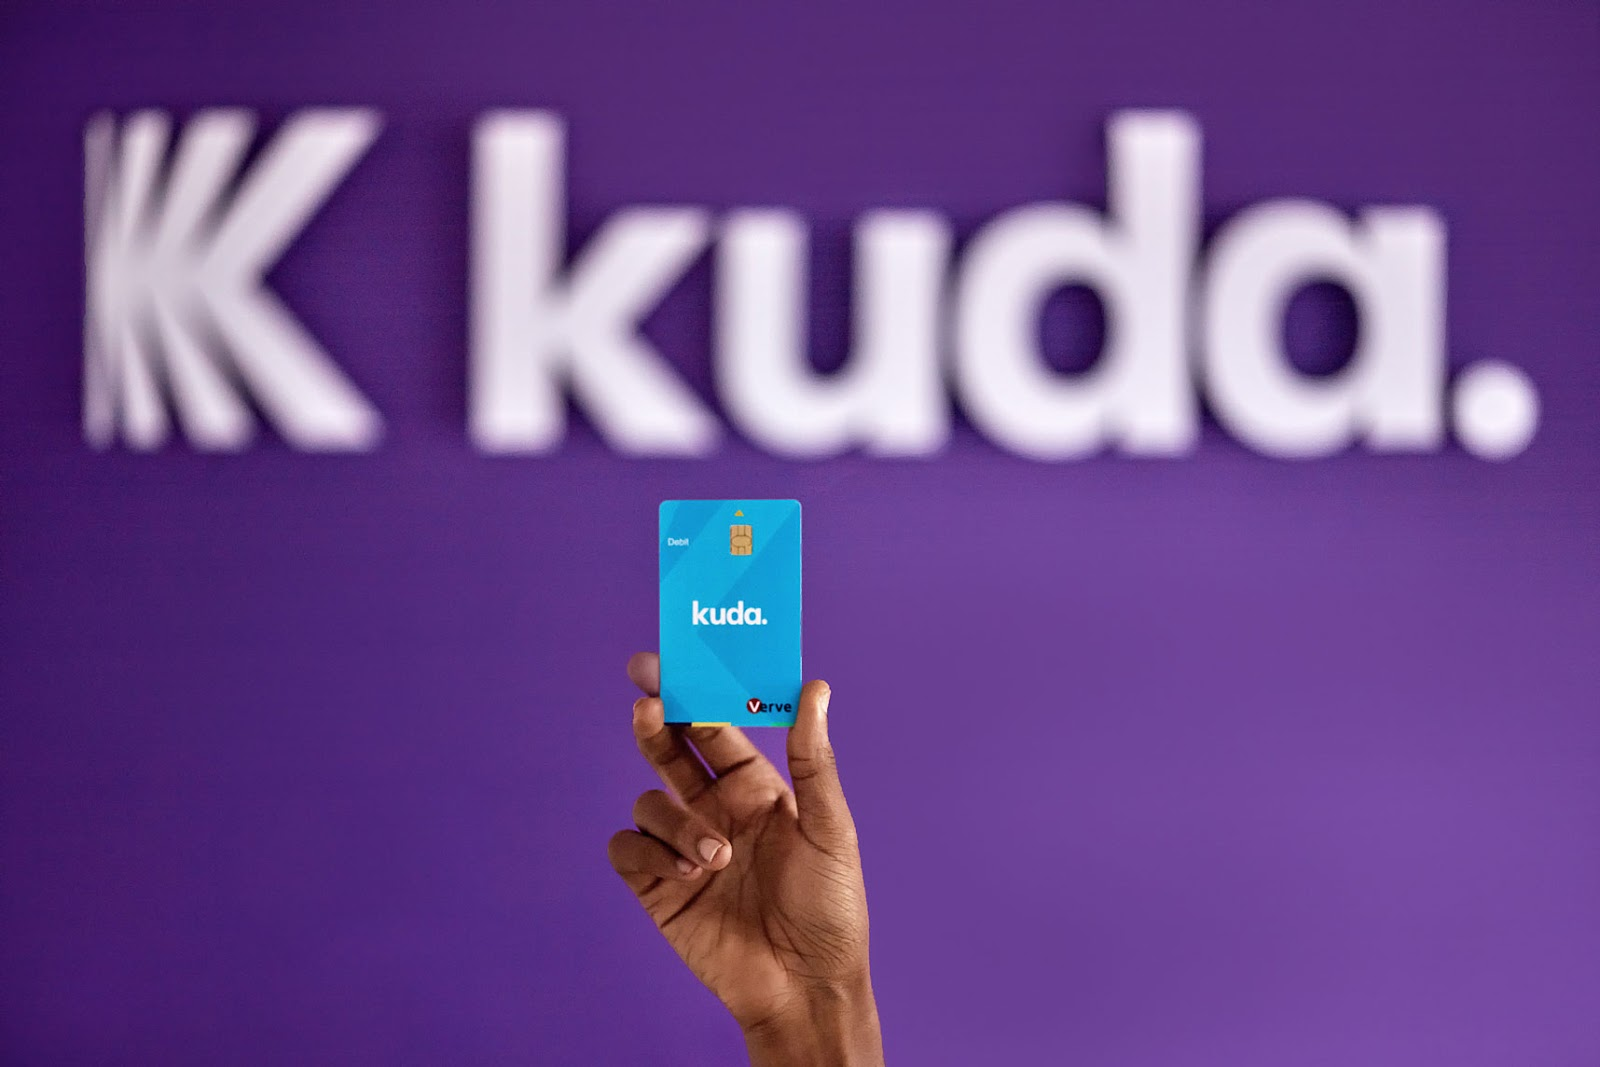 NIGERIAN FINTECH KUDA RAISES $25M, TO EXPAND TO OTHER AFRICAN COUNTRIES